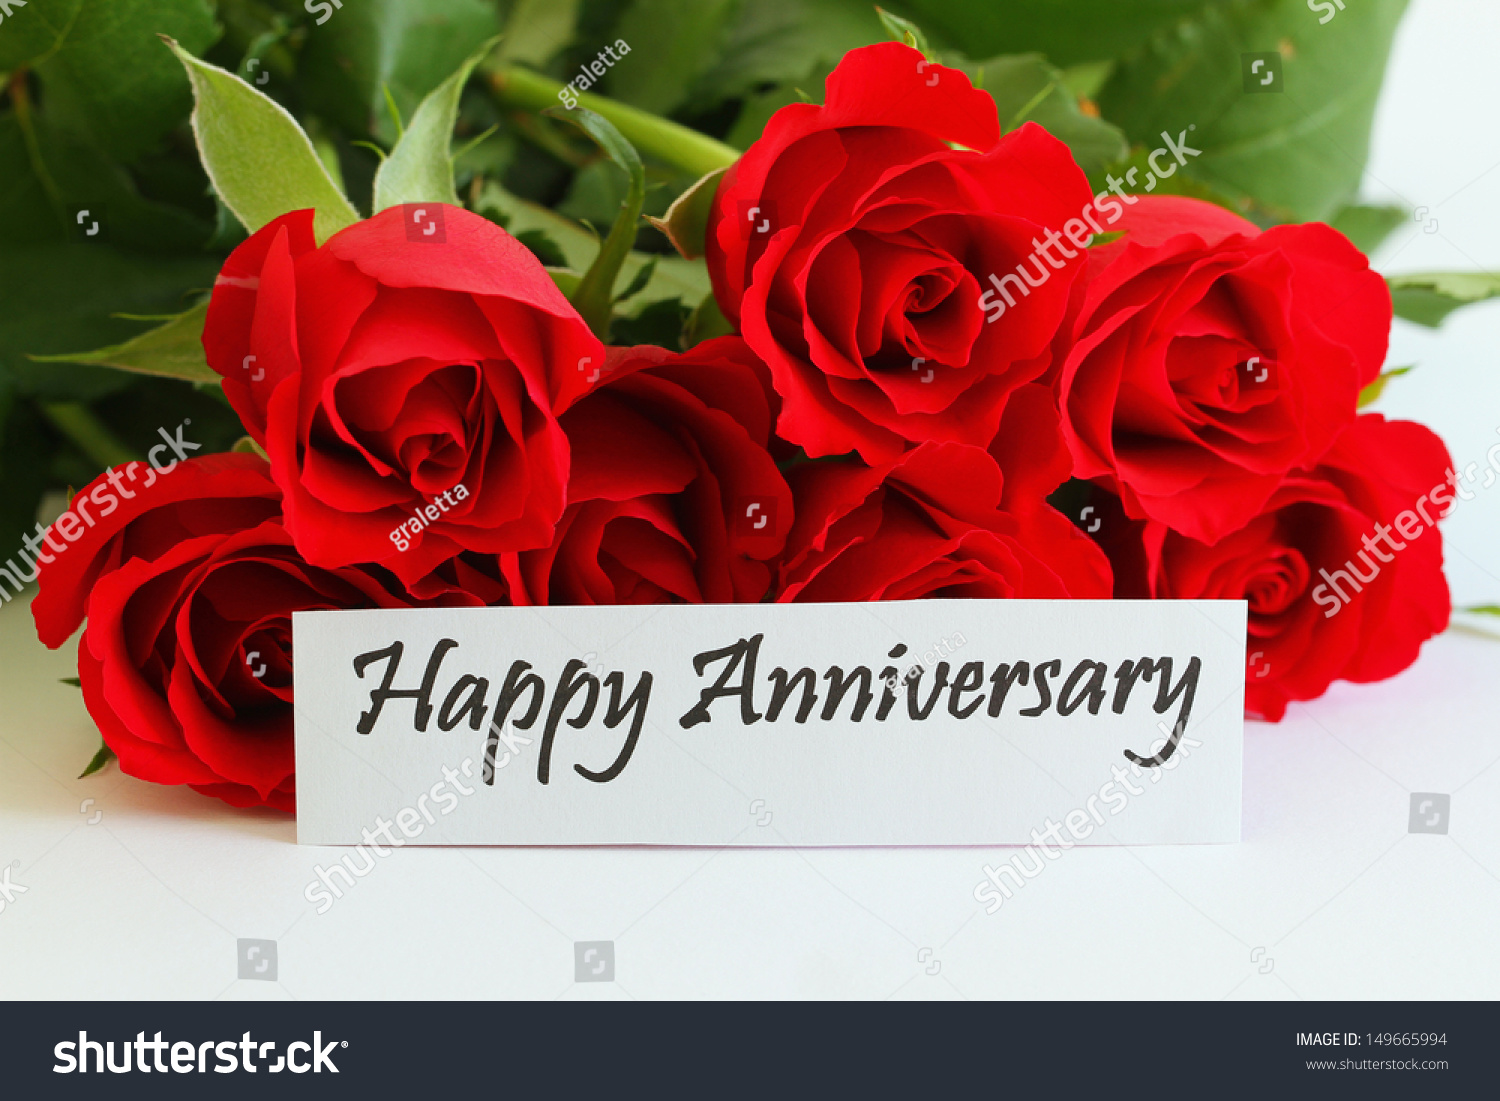 Happy Anniversary Card Red Roses Stock Photo 149665994